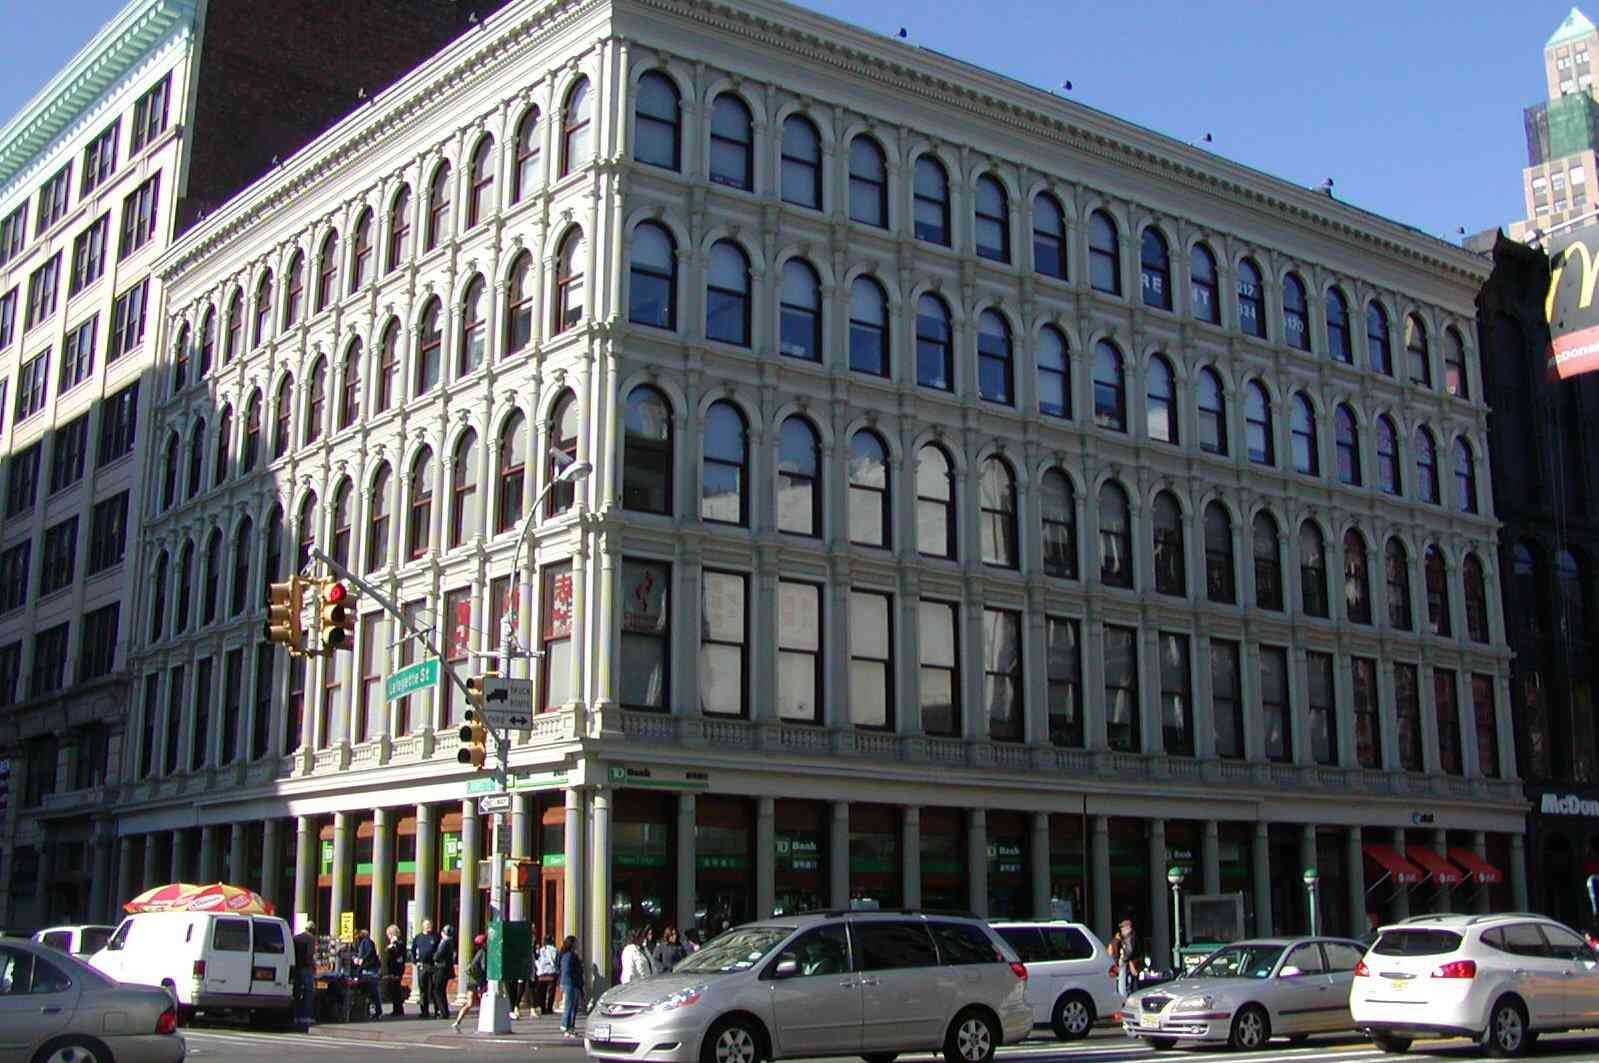 corner building, 5 stories, cast iron facade of George Bruce's 19th century printing business.